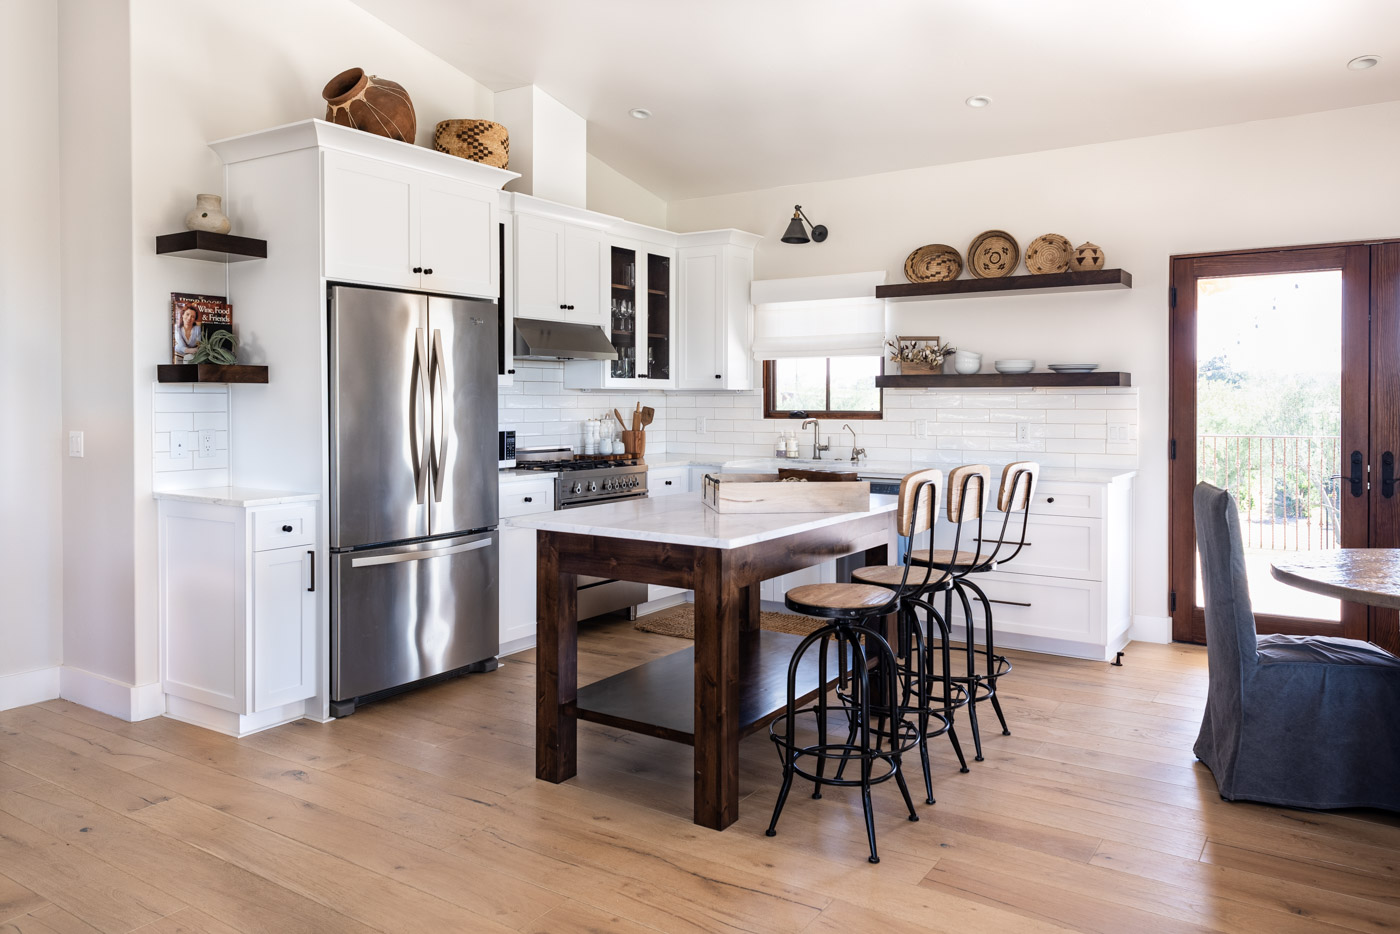 Vineyard Guest House kitchen design with white painted shaker cabinets and open shelves